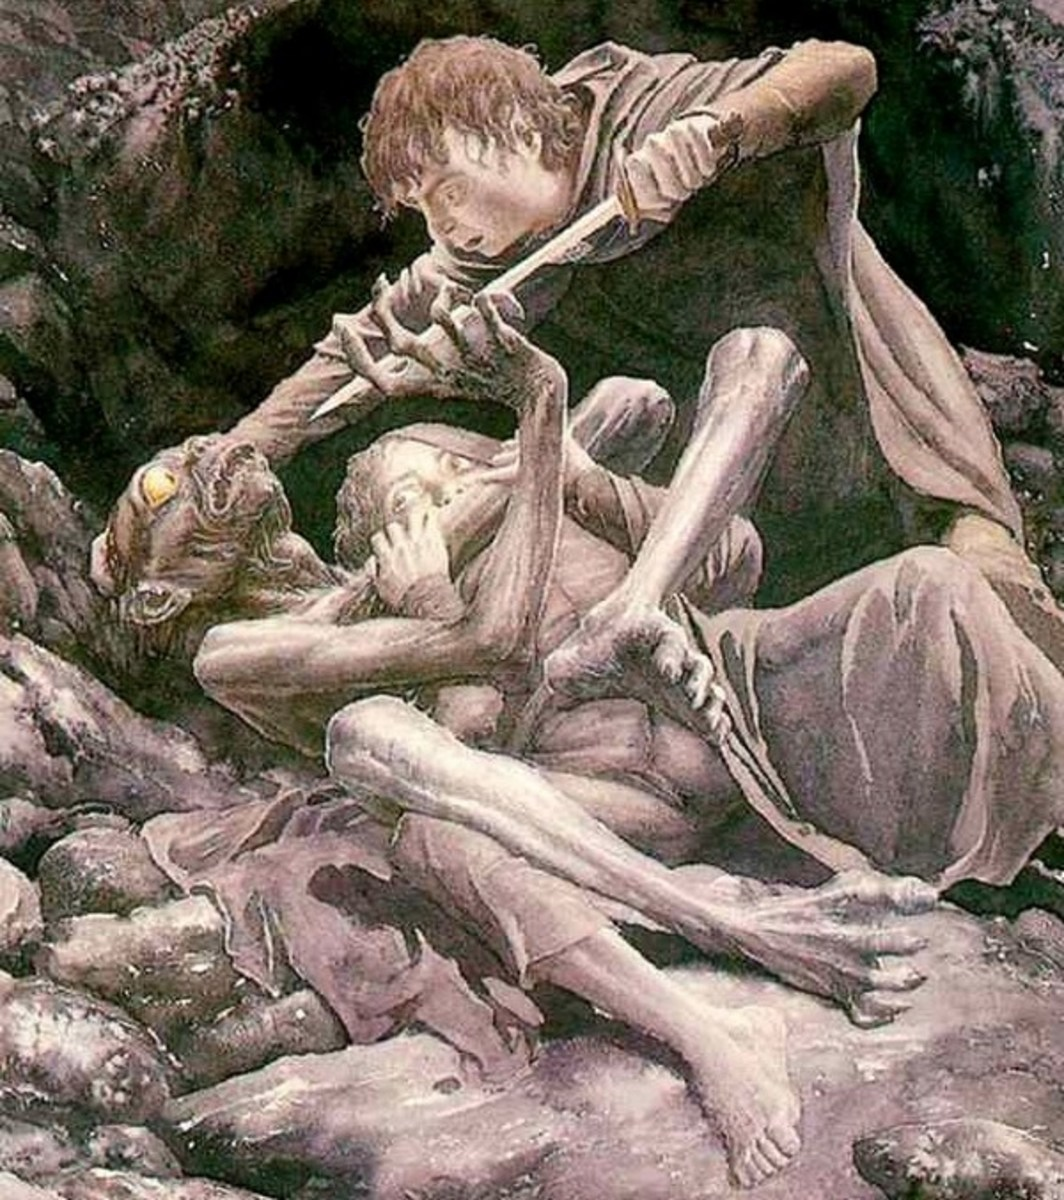 The Taming of Smeagol - Art by Alan Lee